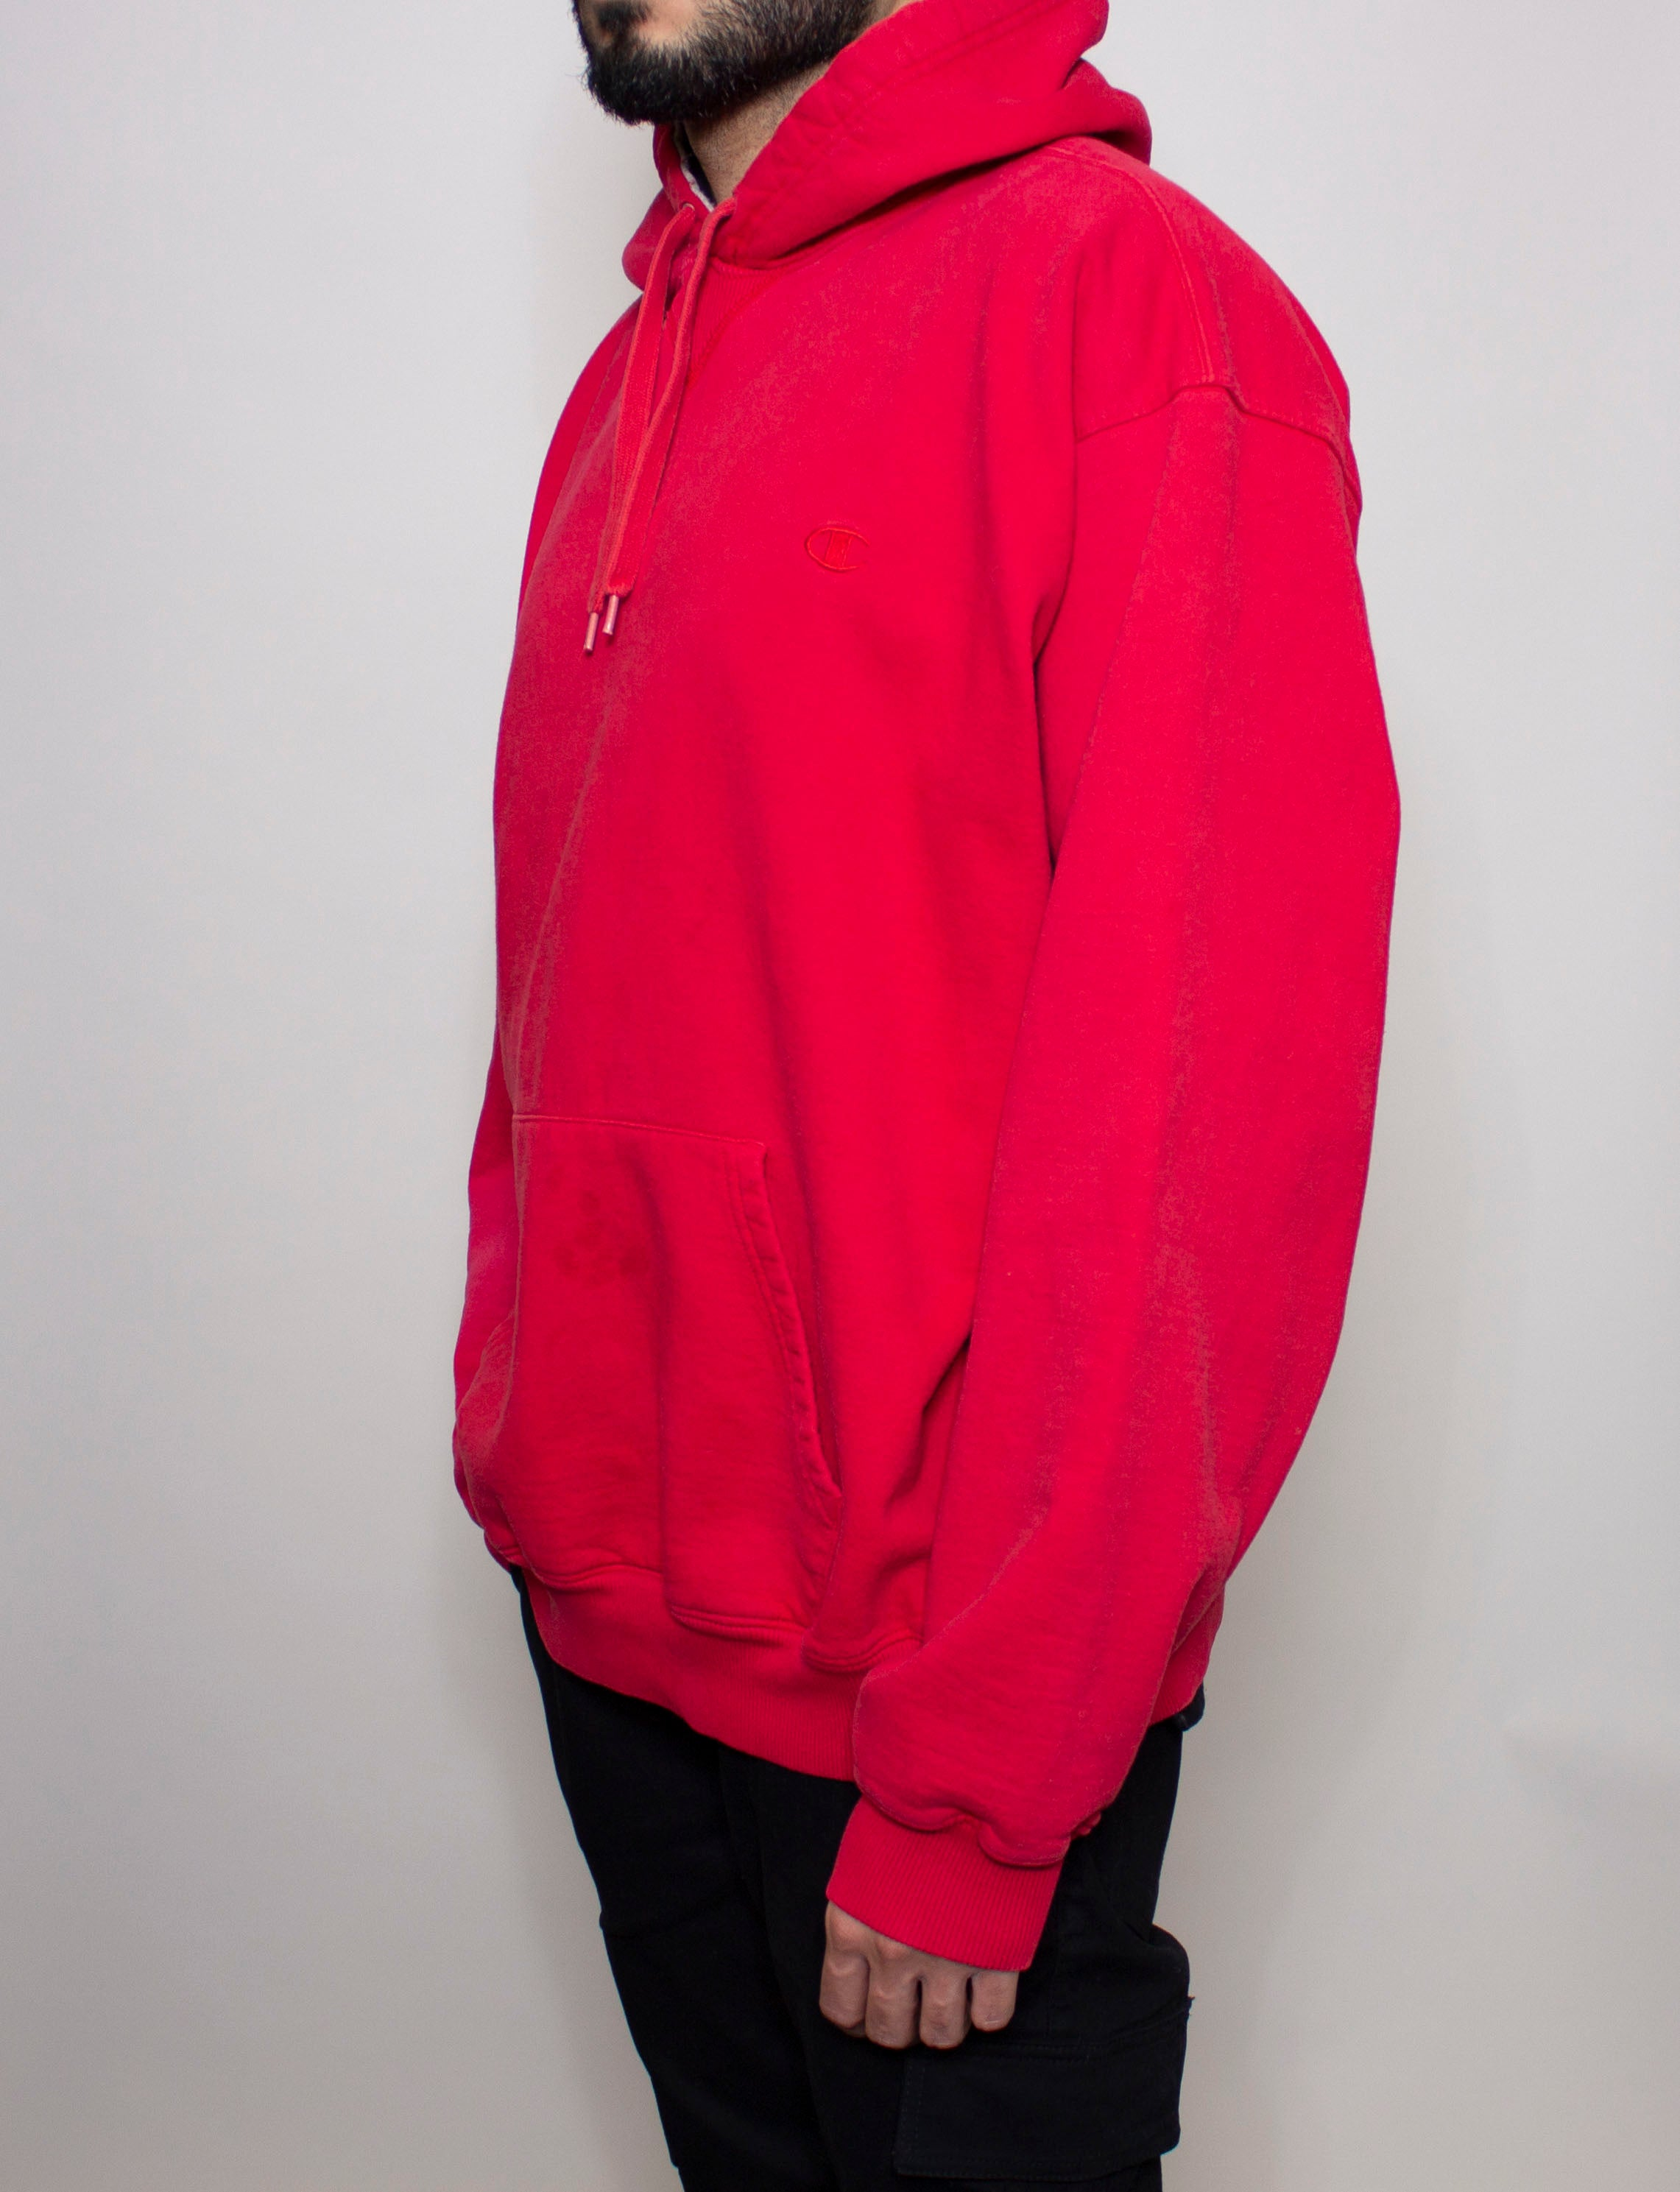 Red Champion Hoodie